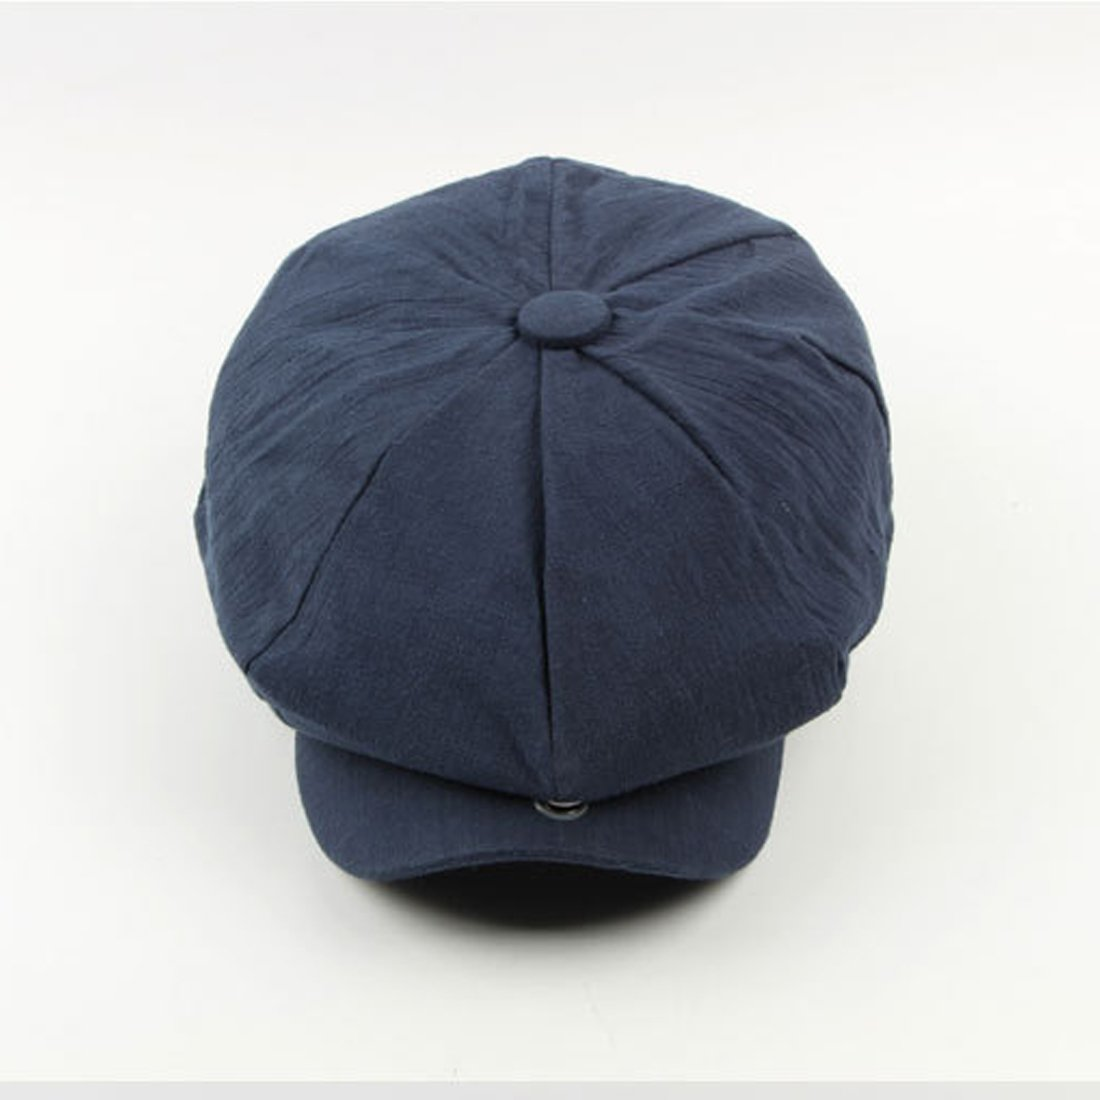 Wool Blend Newsboy Hat Collection Ivy Hat Classic 8 Panel Cap Retro Driving Hat